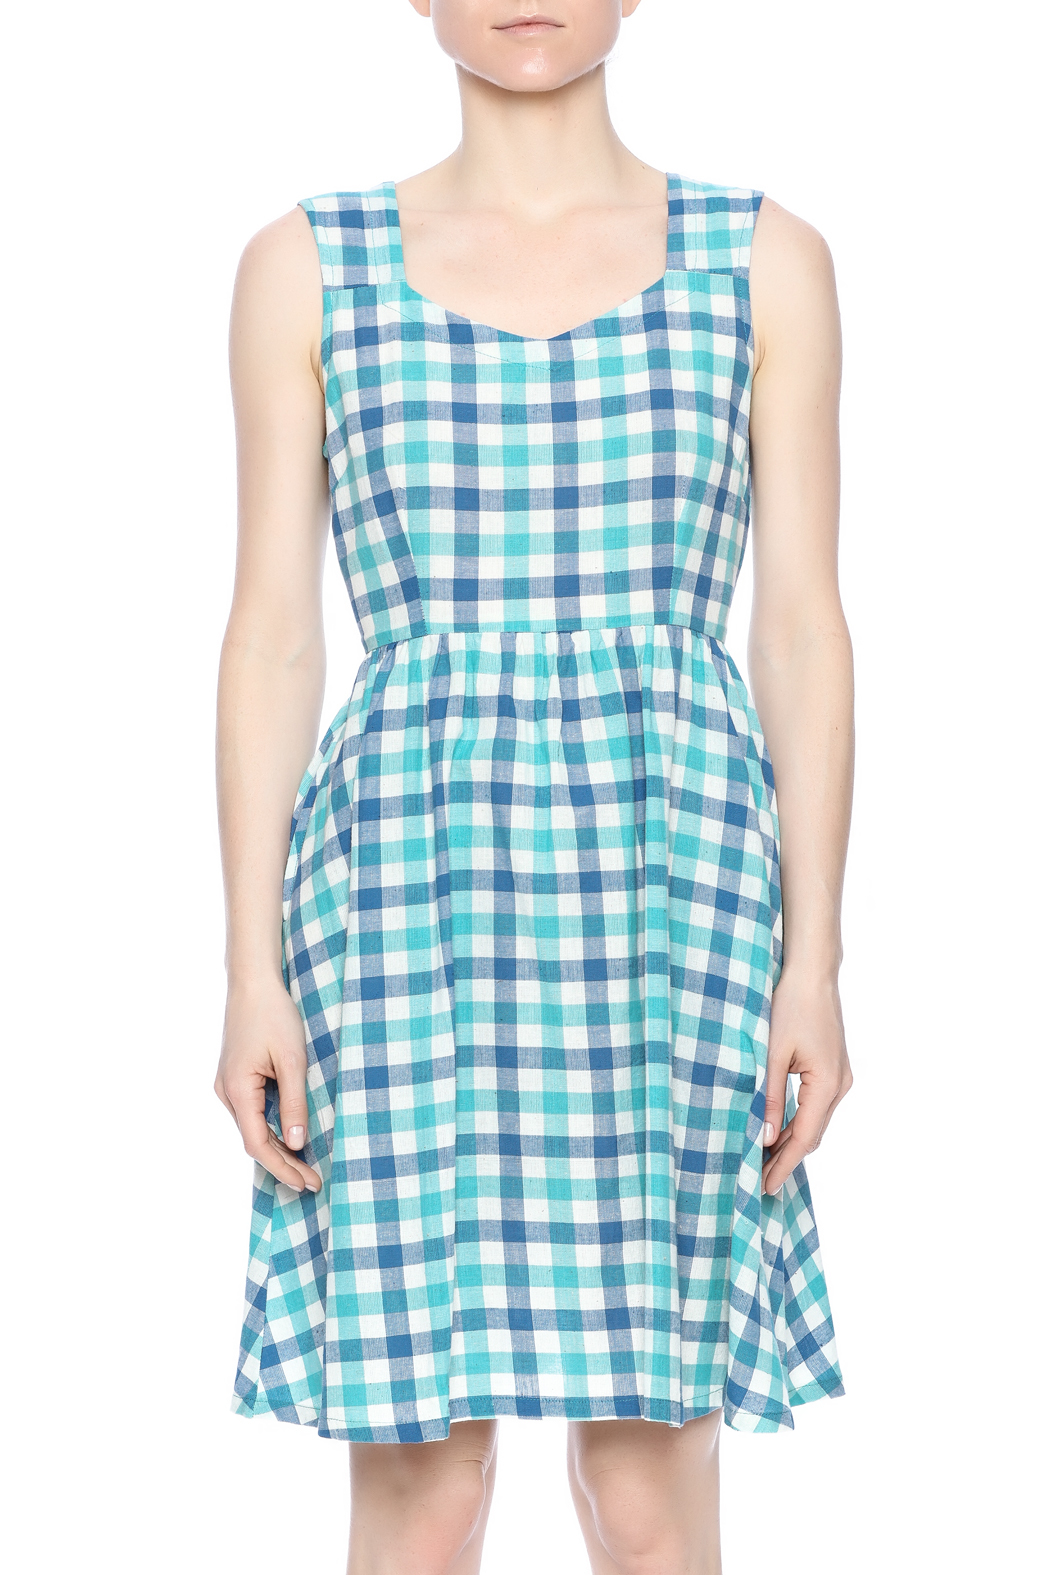 Mata Traders Darling Poets Dress - Side Cropped Image